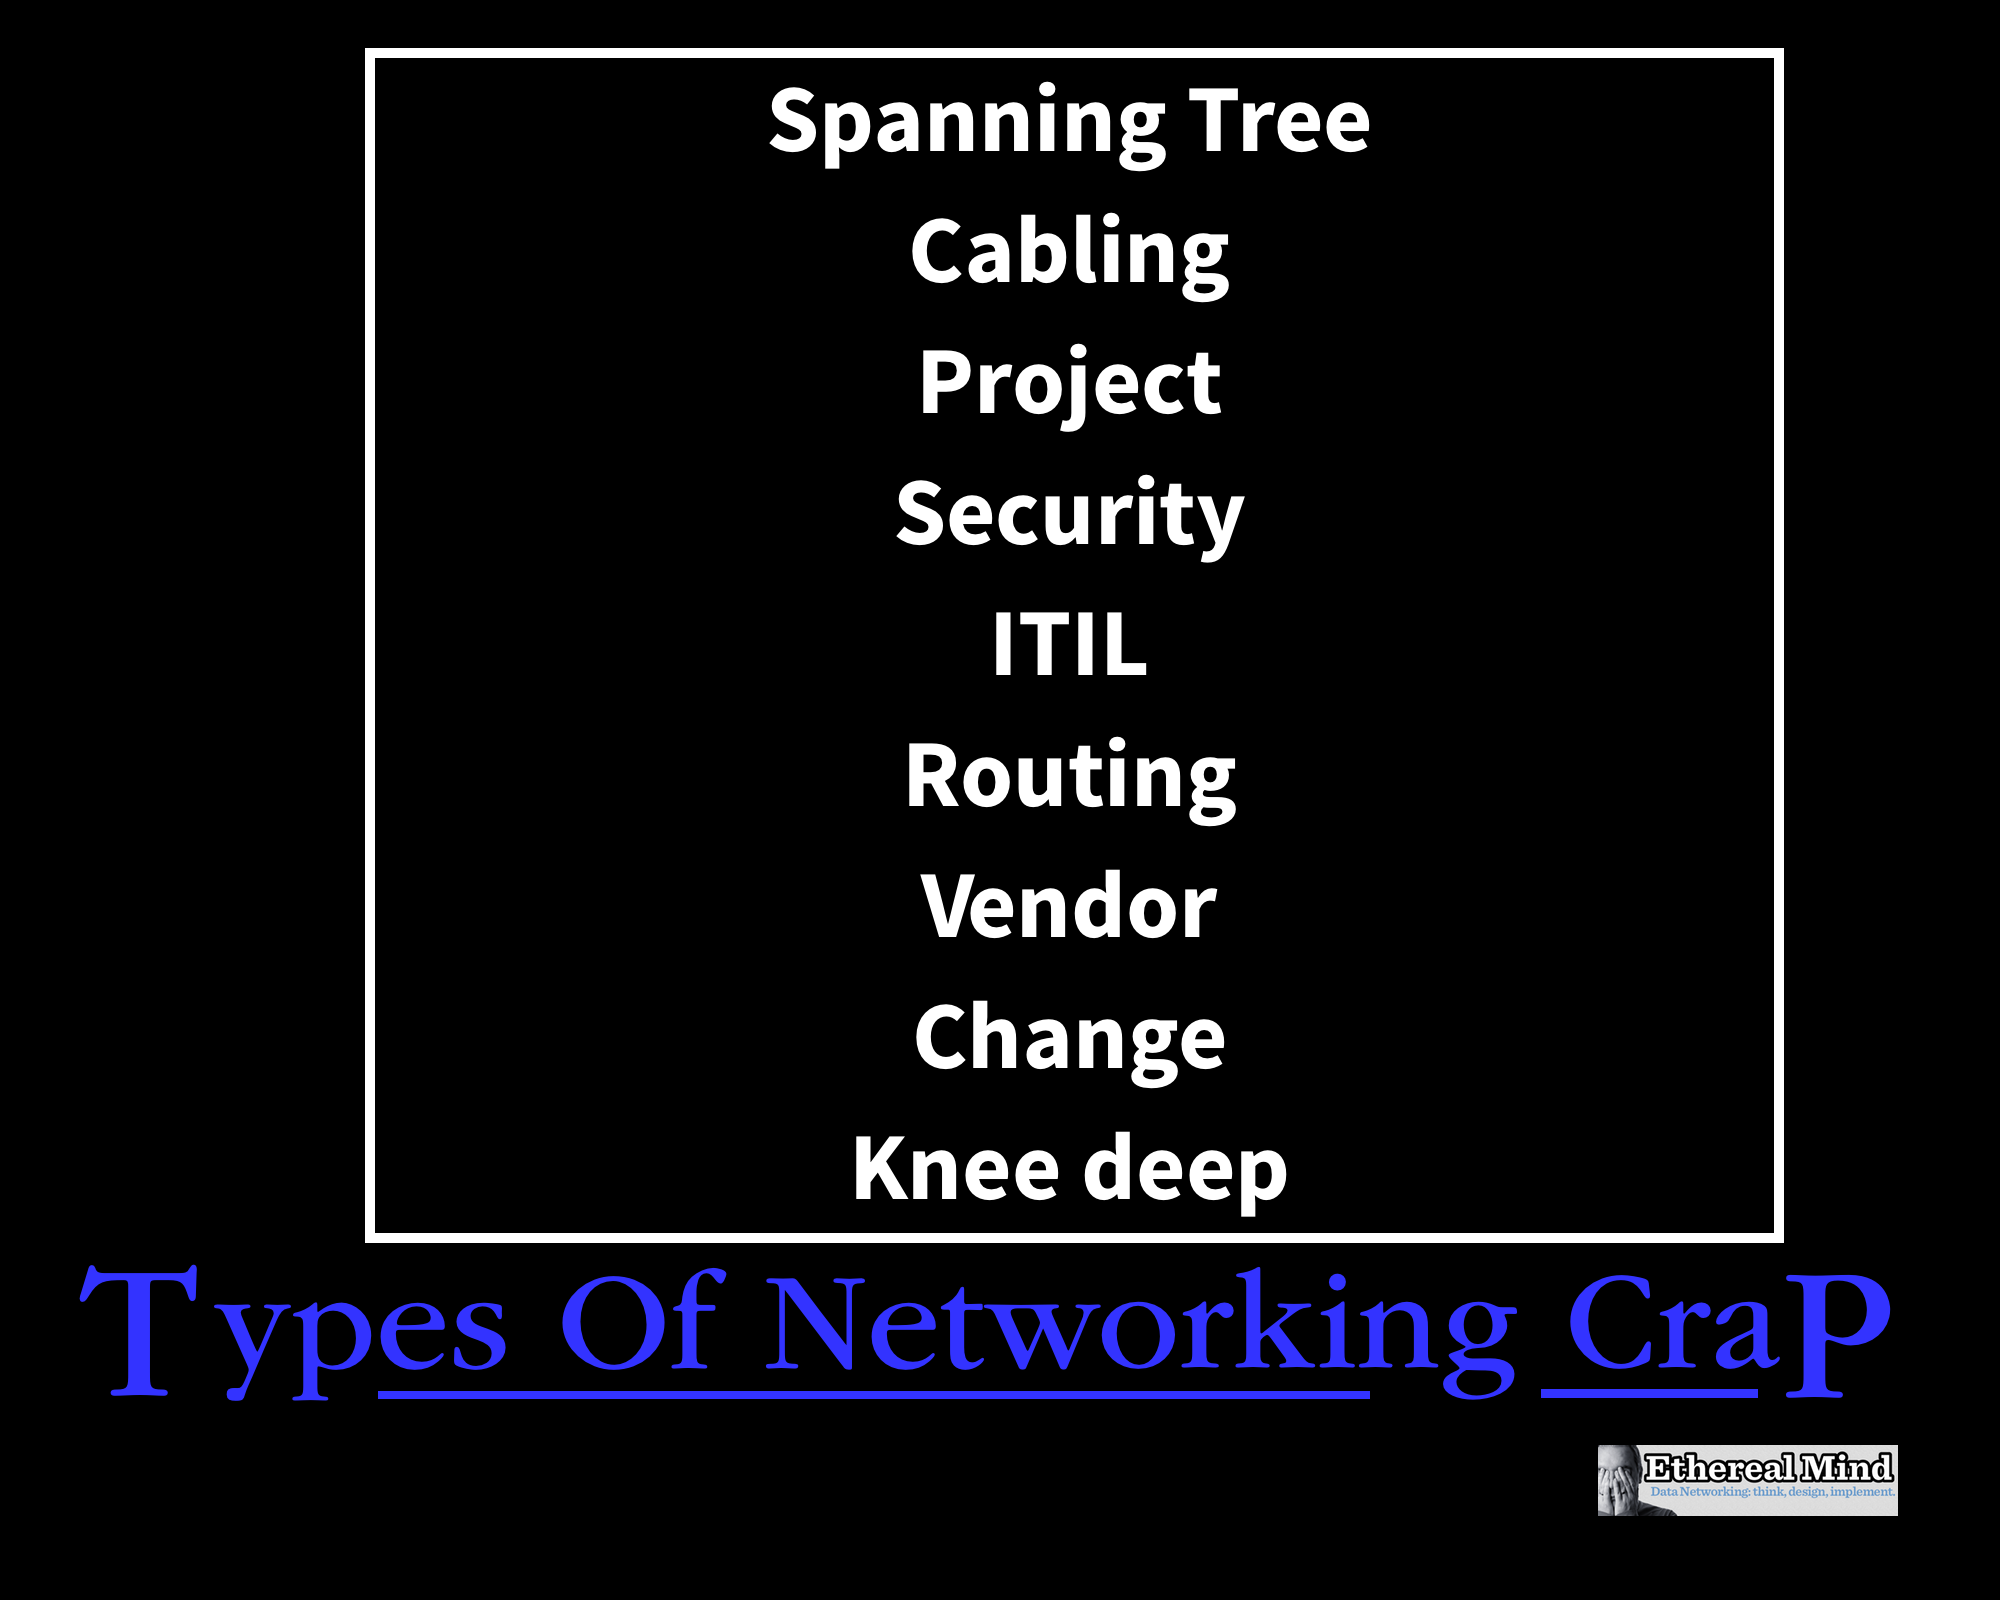 poster-types-of-network-crap.png